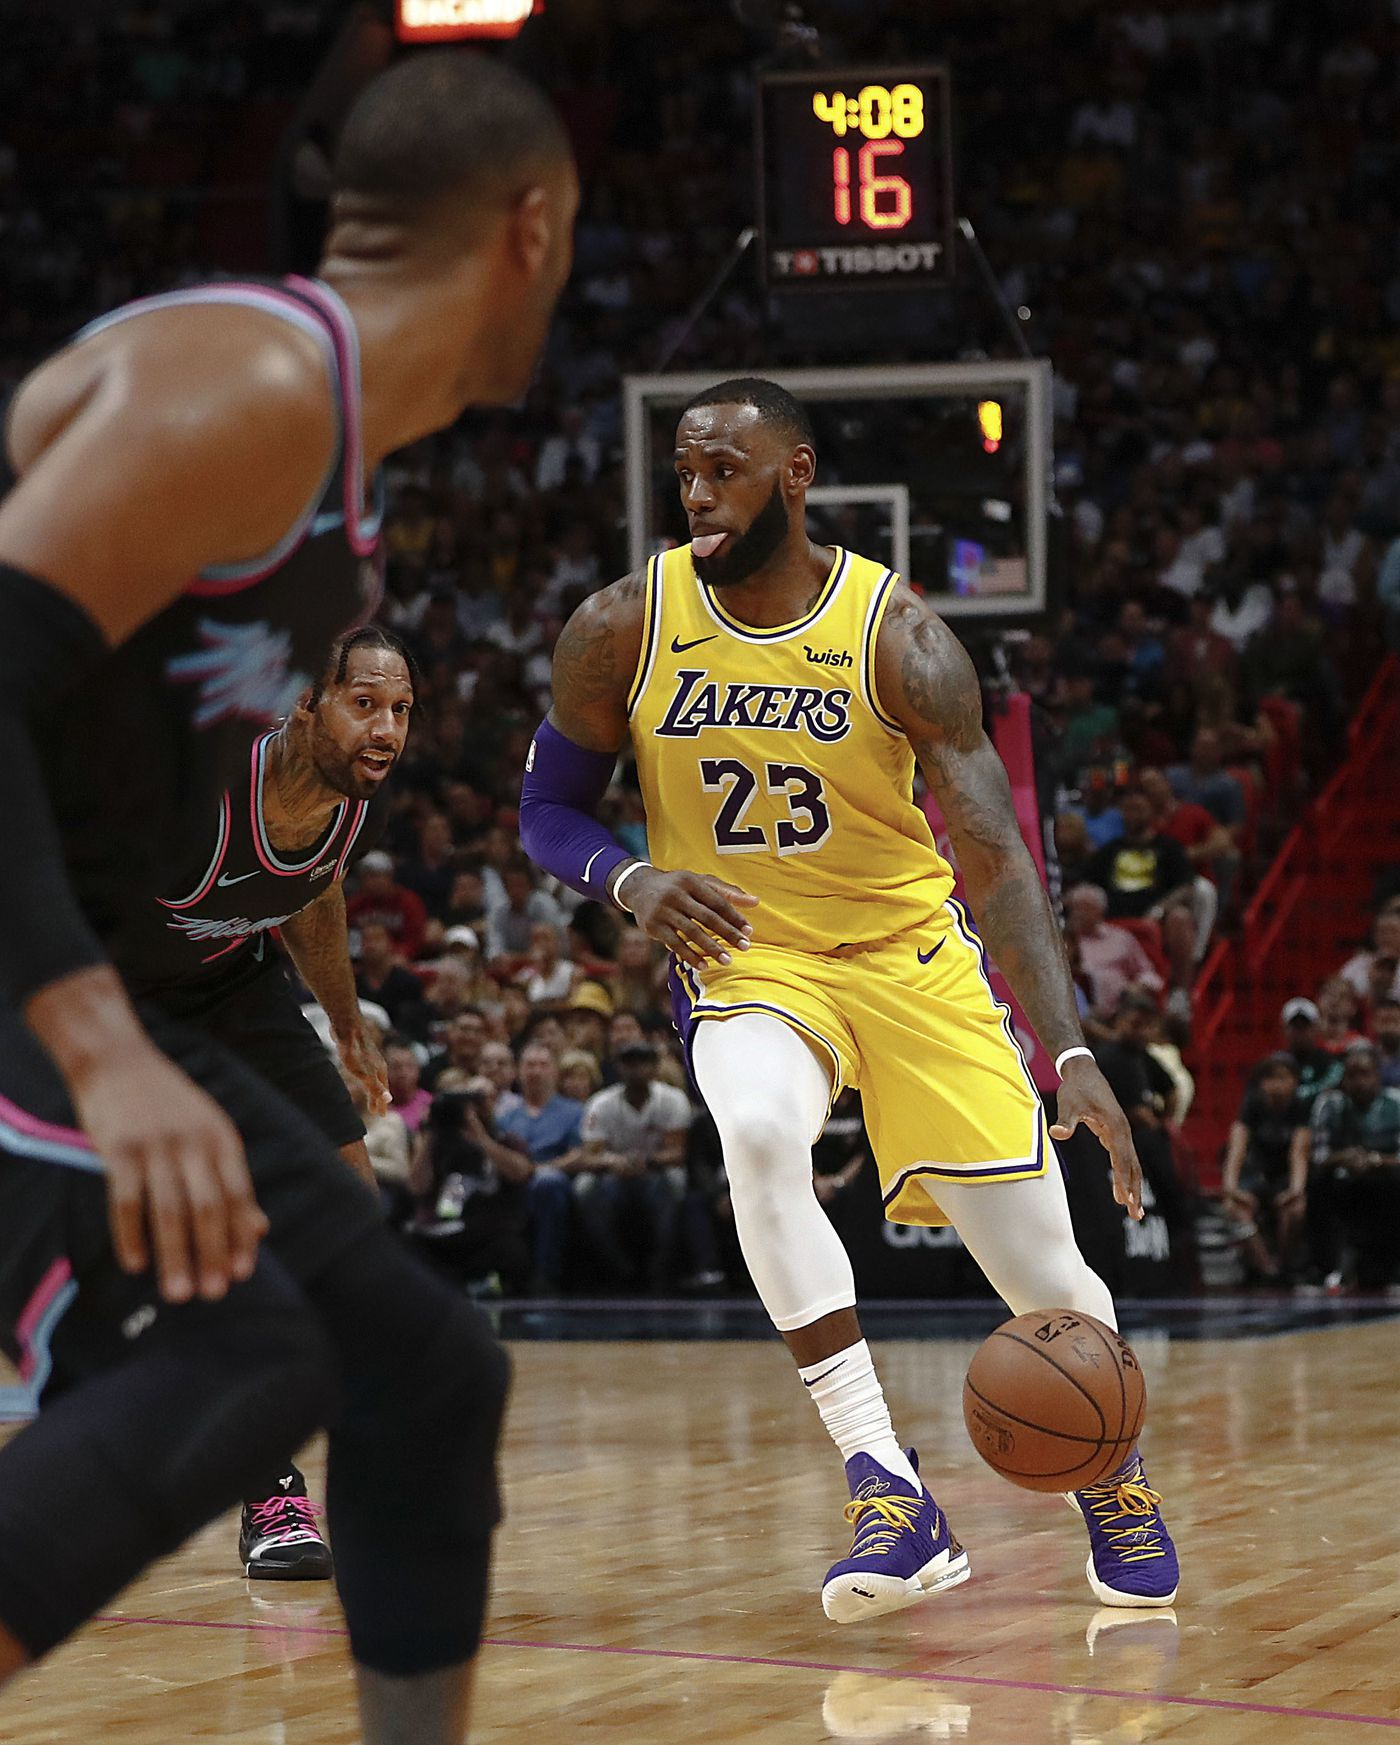 Los Angeles Lakers forward LeBron James dribbles the ball during the first half of the team's